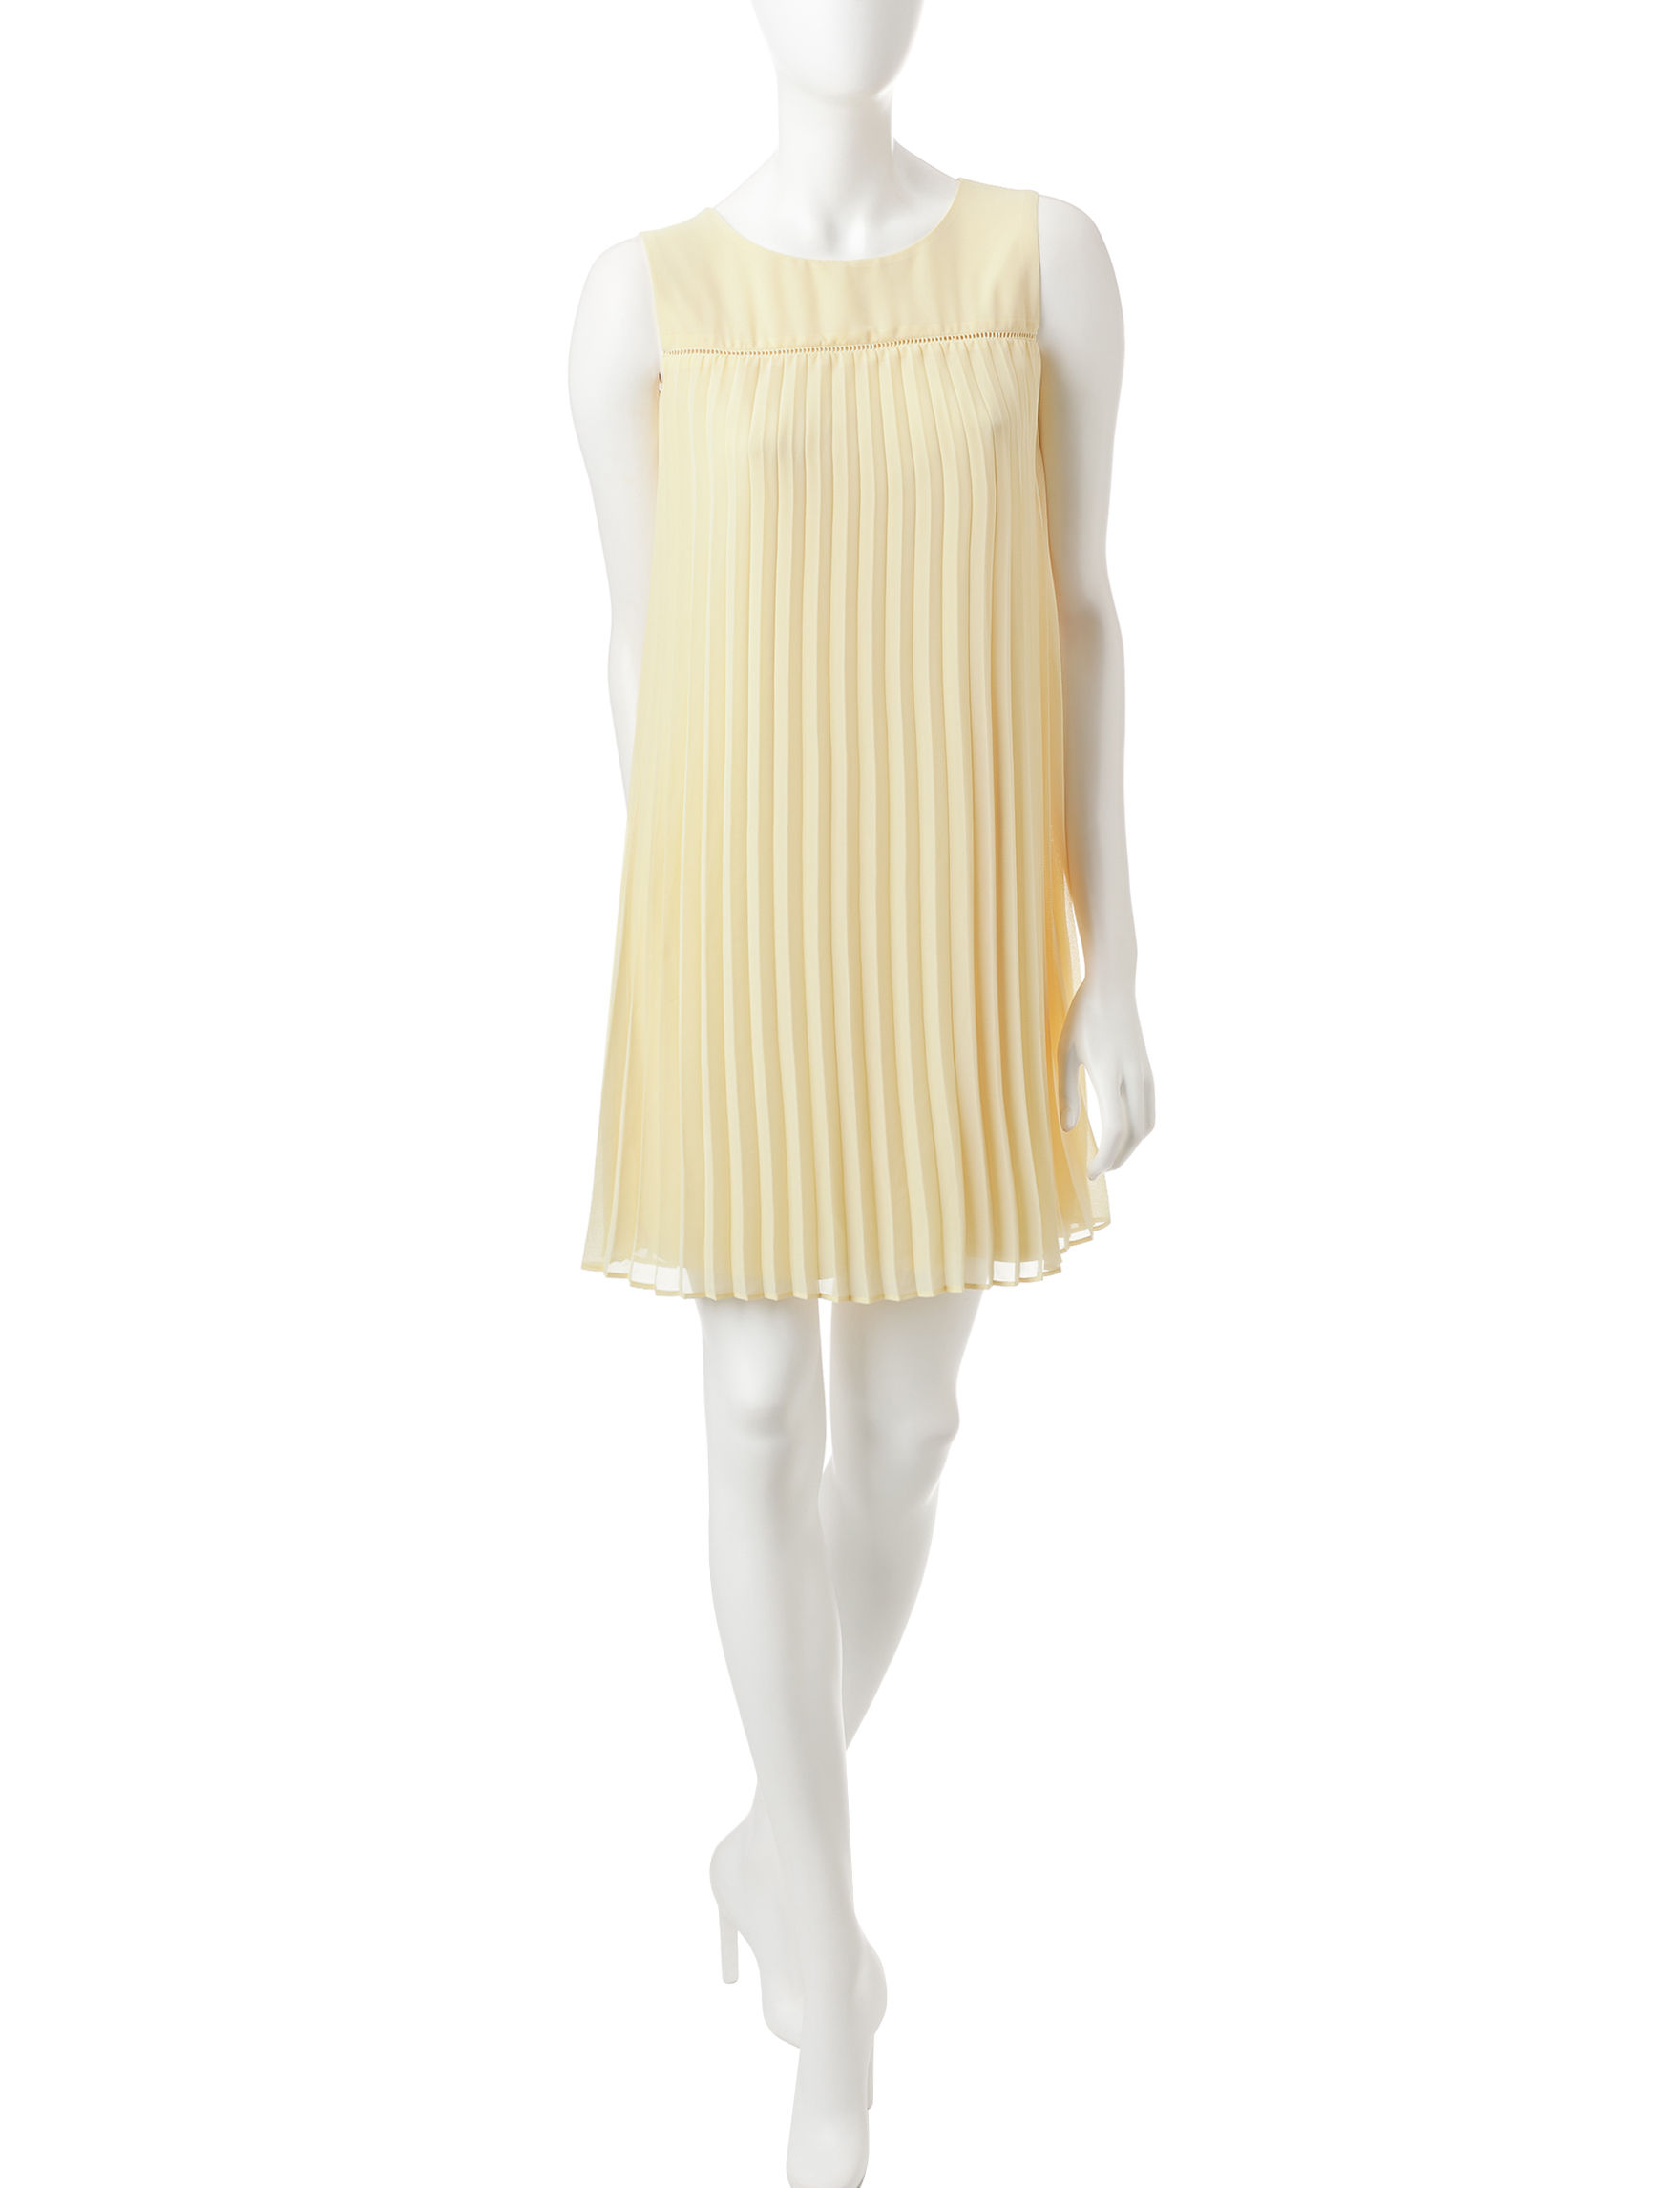 A. Byer Yellow Everyday & Casual